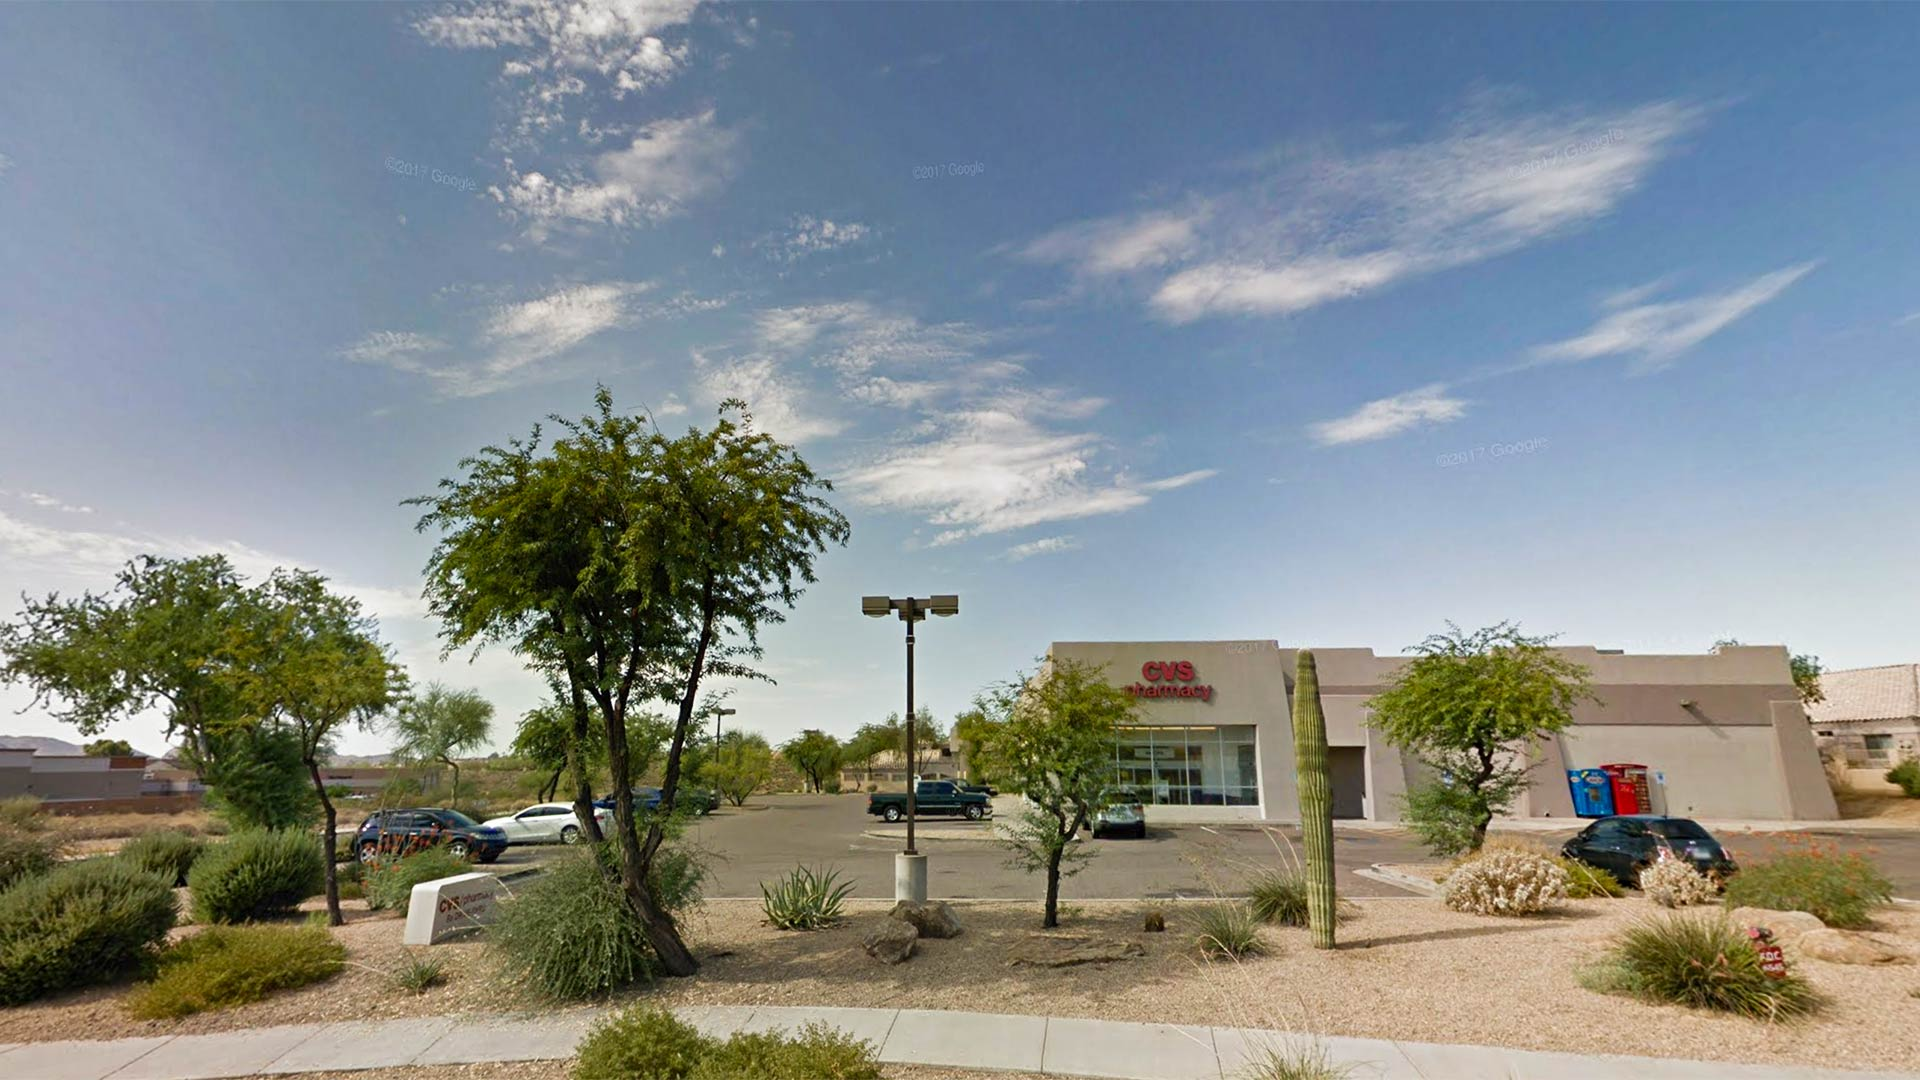 A transgender woman said a pharmacist at a Fountain Hills CVS made her feel humiliated.